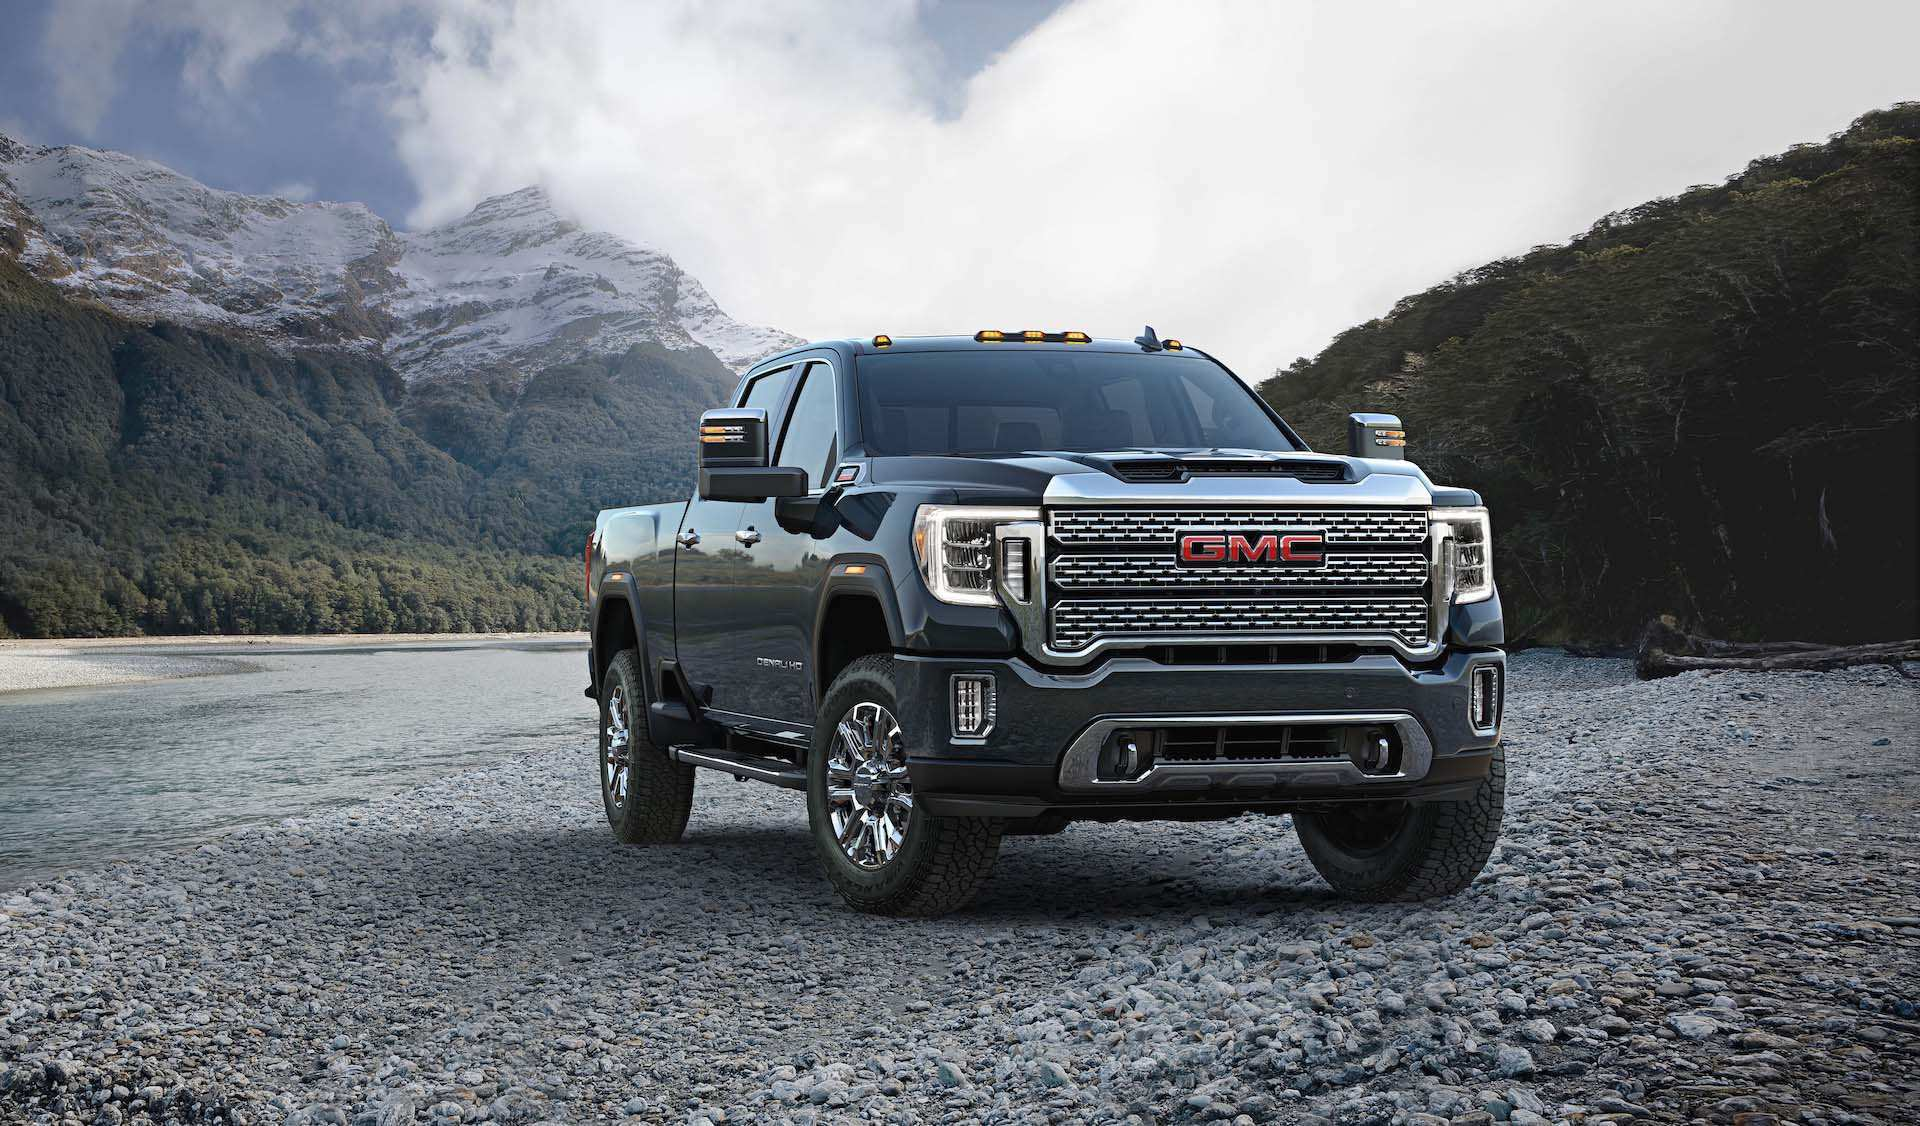 79 Best 2020 GMC Sierra Hd At4 Engine